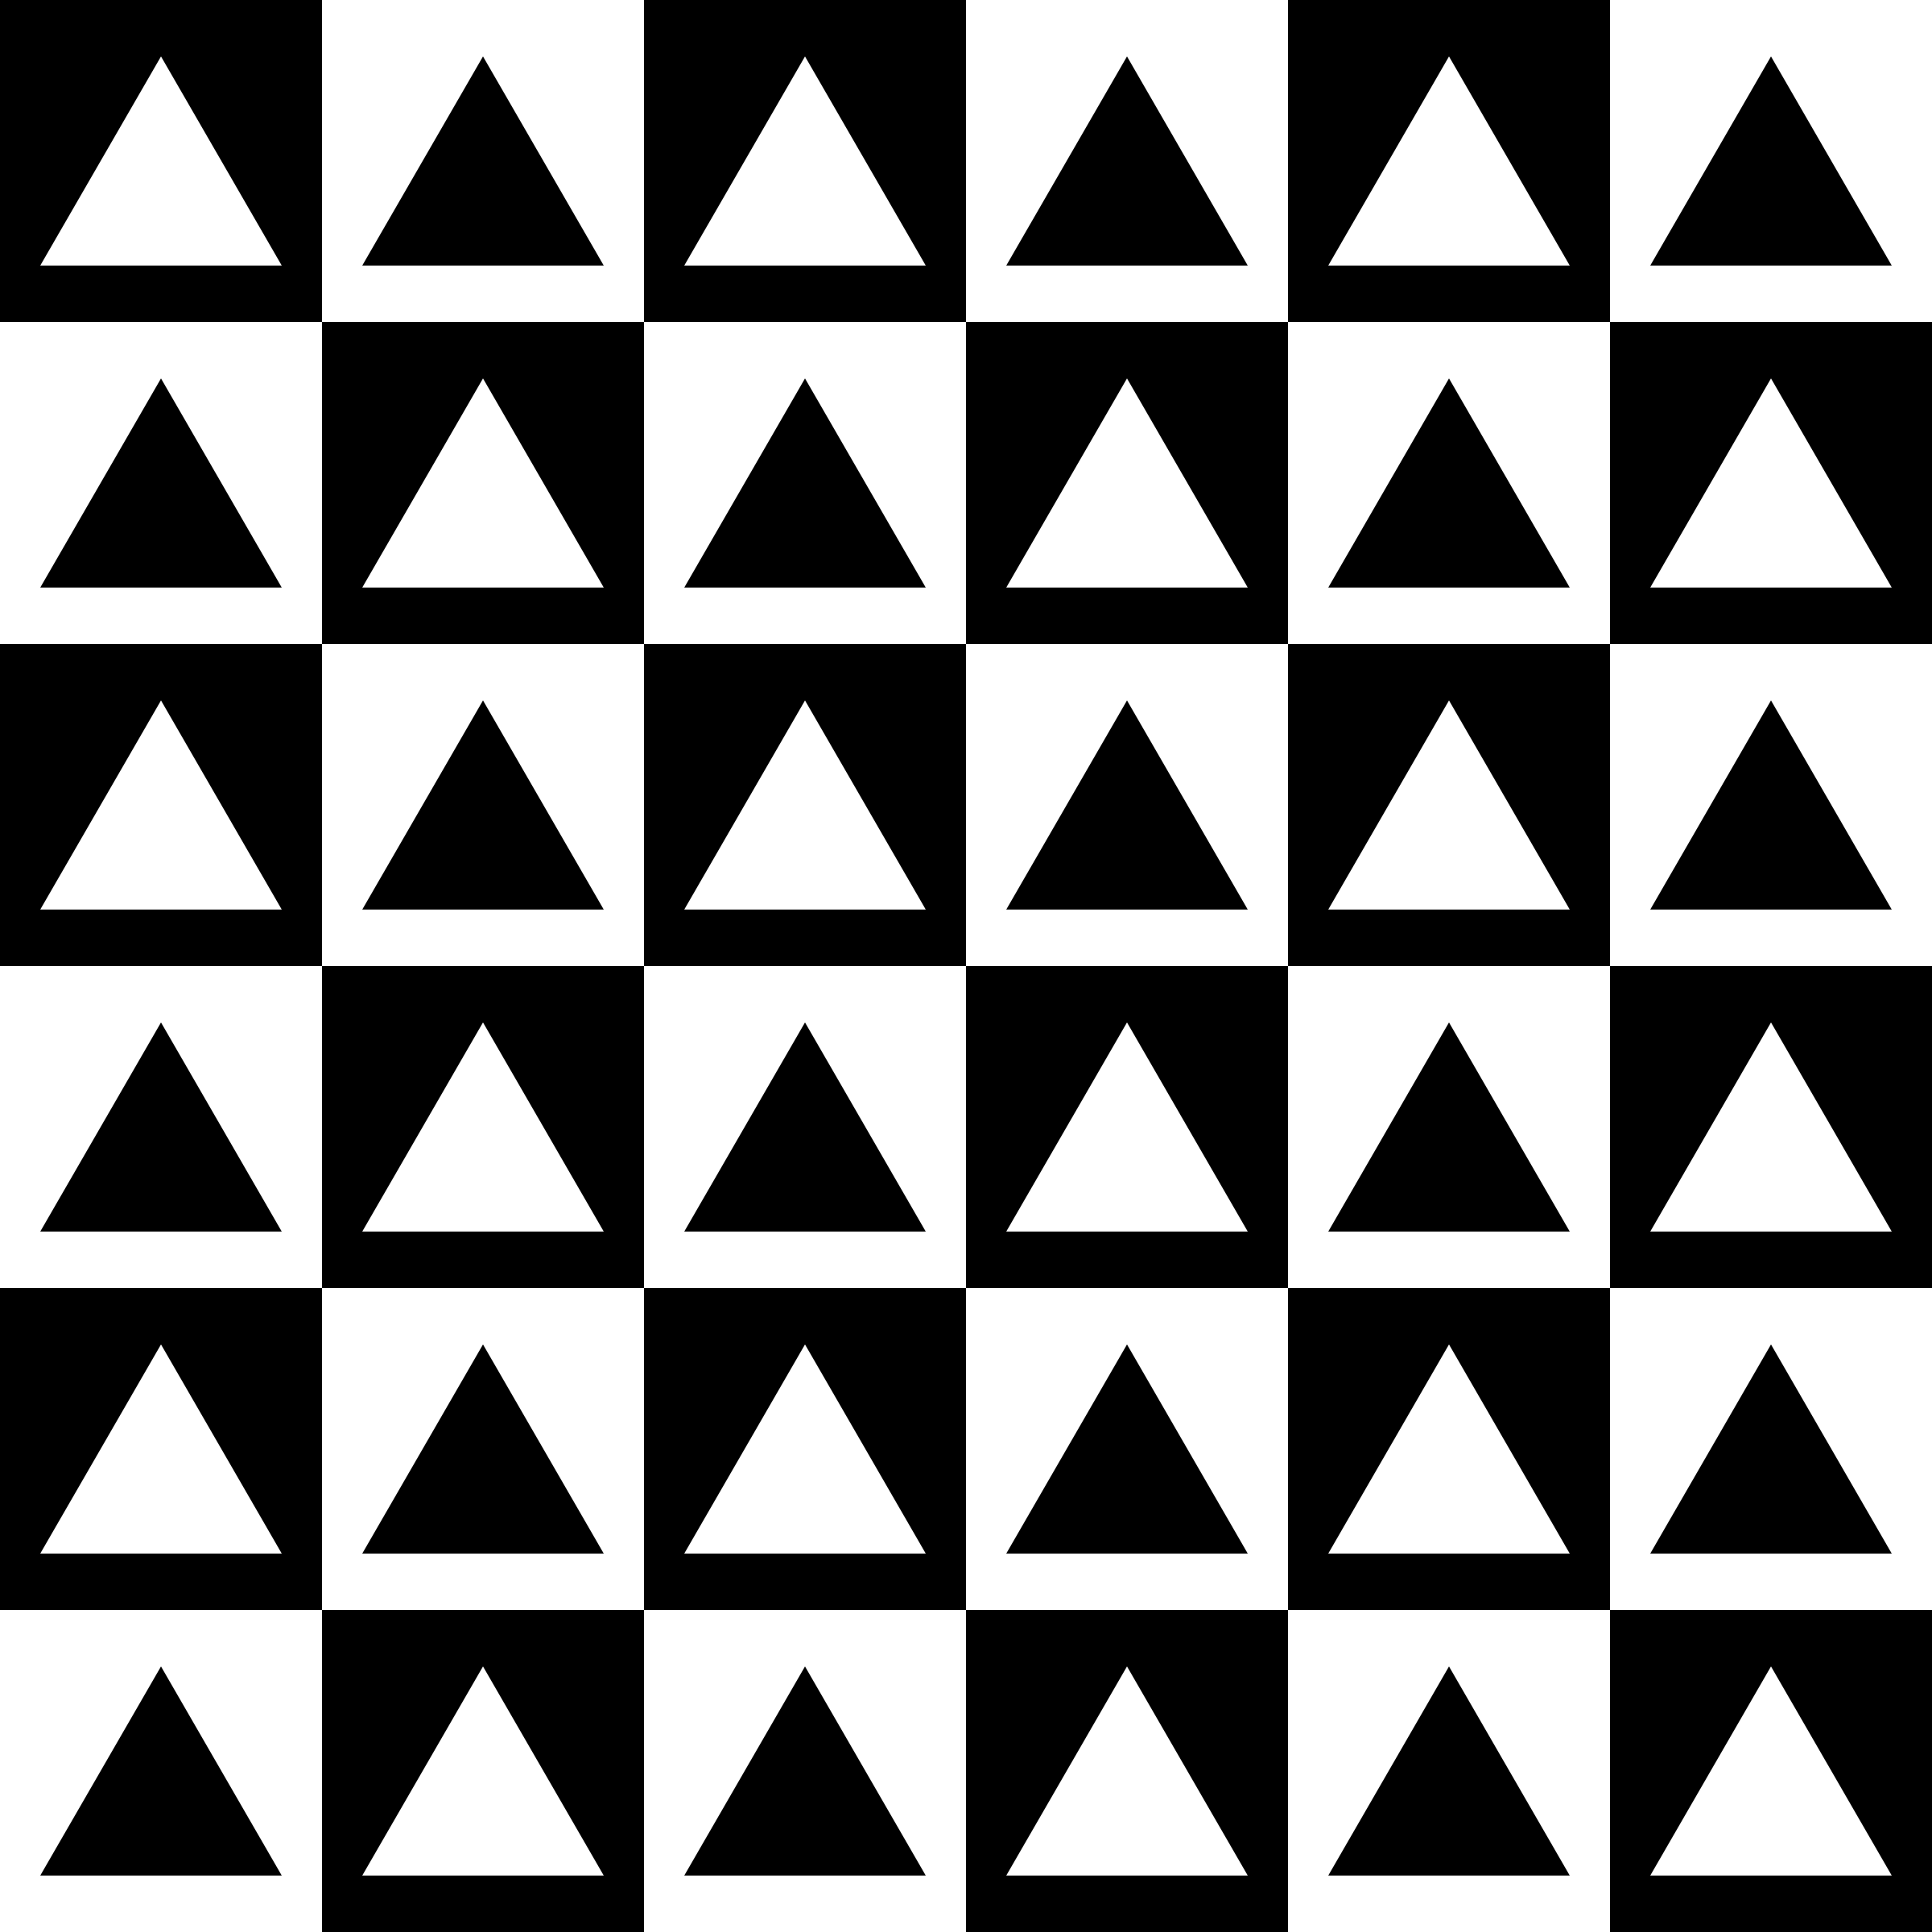 triangles inside chessboard by 10binary